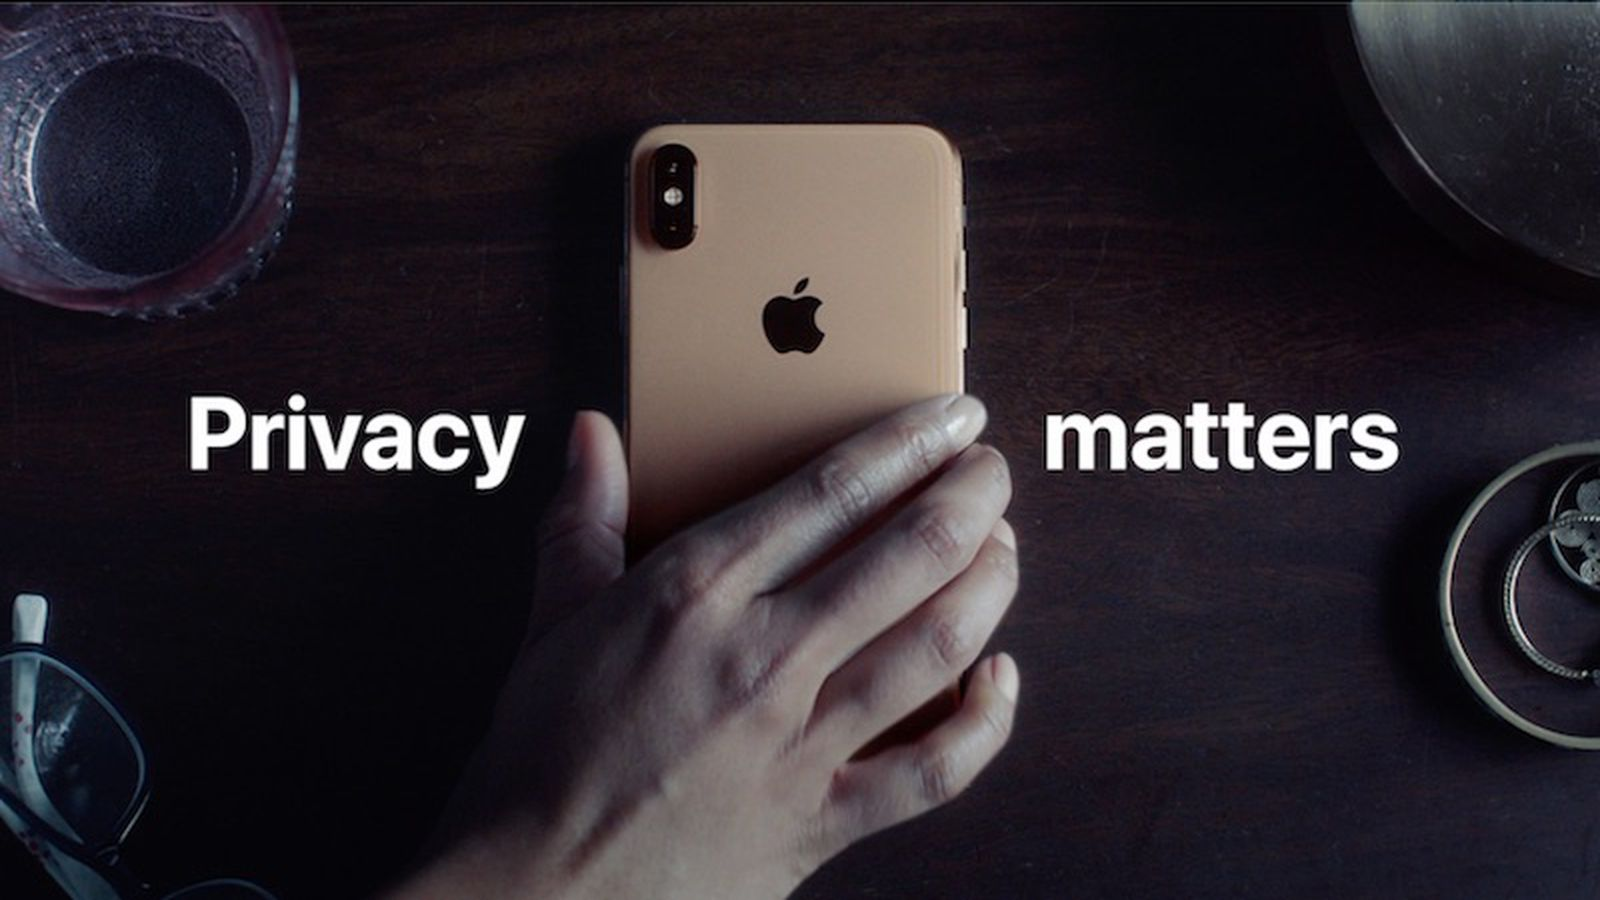 How to do privacy and security settings on iPhone? [iOS 14]